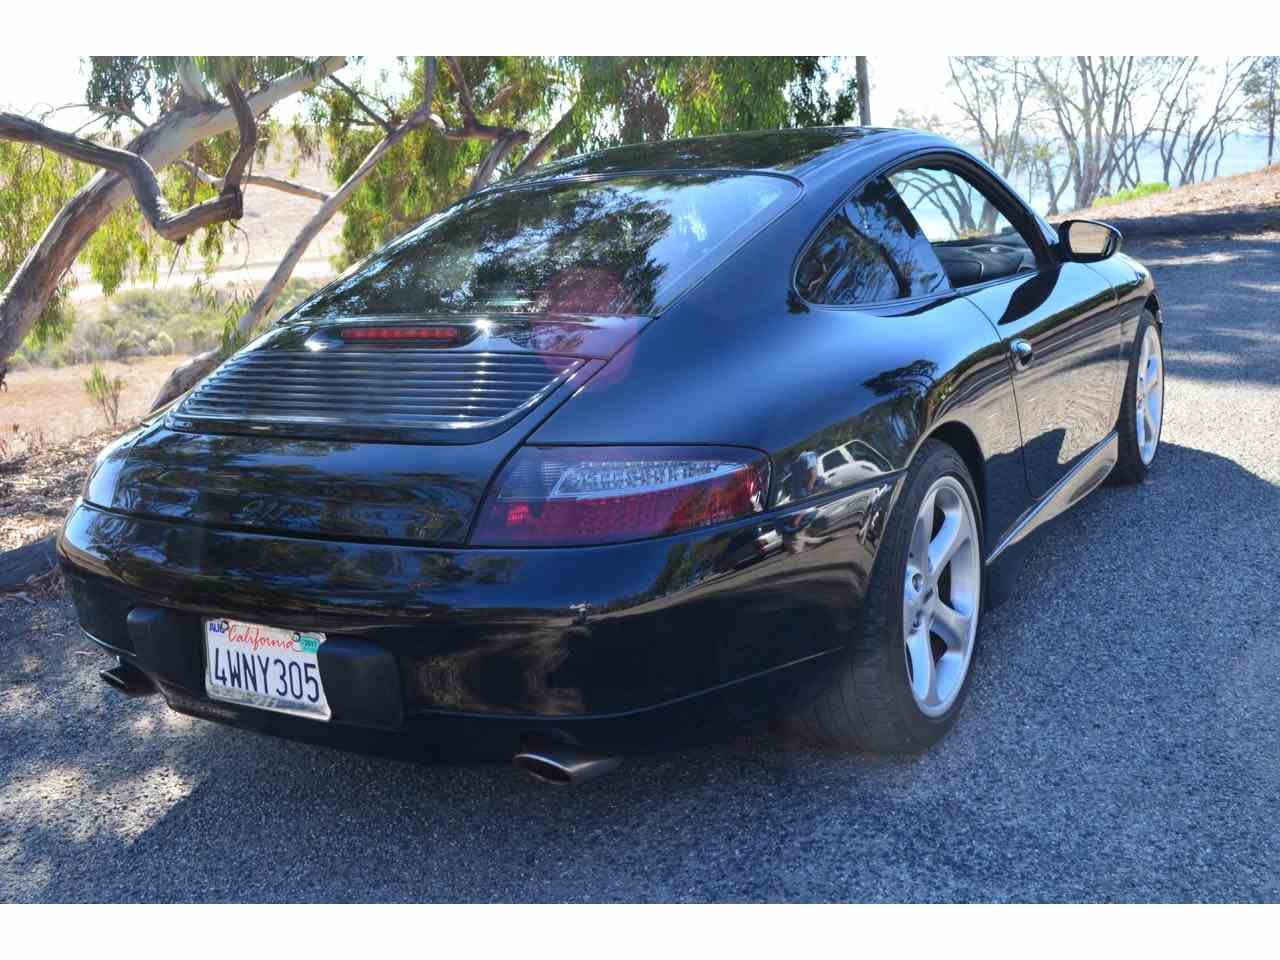 Large Picture of 1999 Porsche 911 Carrera located in California - $23,500.00 - JPFN